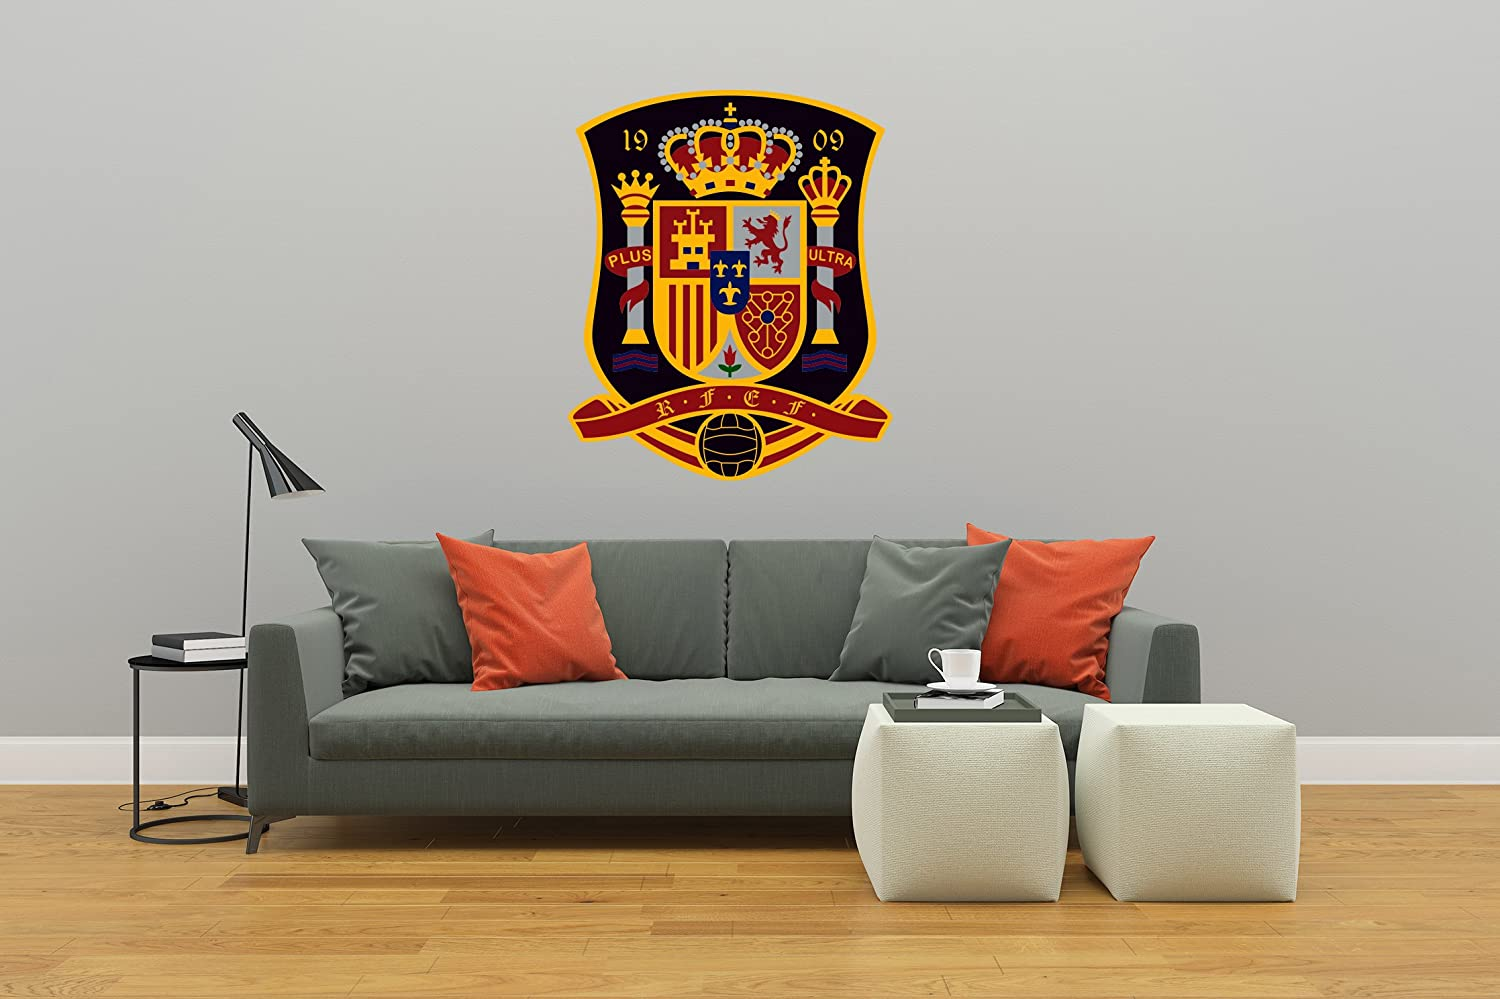 Ottosdecal Spain Soccer National Team - Wall Decal Vinyl Sticker for Home Interior Decoration Bedroom, Laptop, Window, Mirror, Car (20